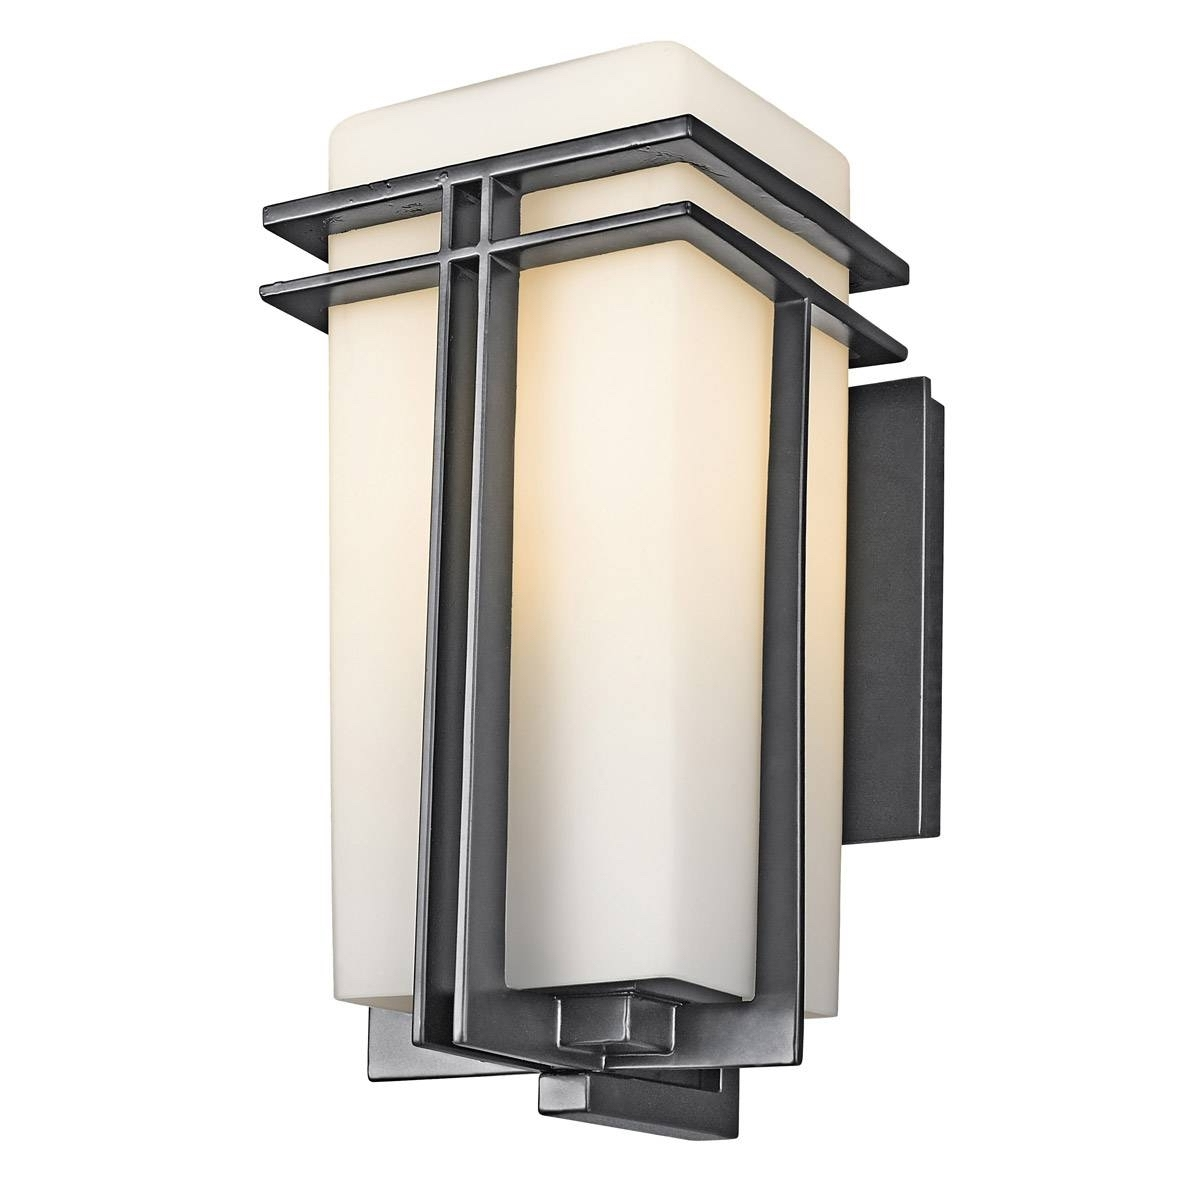 Outdoor Wall Lighting At Houzz With Regard To Fashionable Exterior Wall Light Fixtures Pacificfg Com Outdoor Sconce Lighting (View 4 of 20)